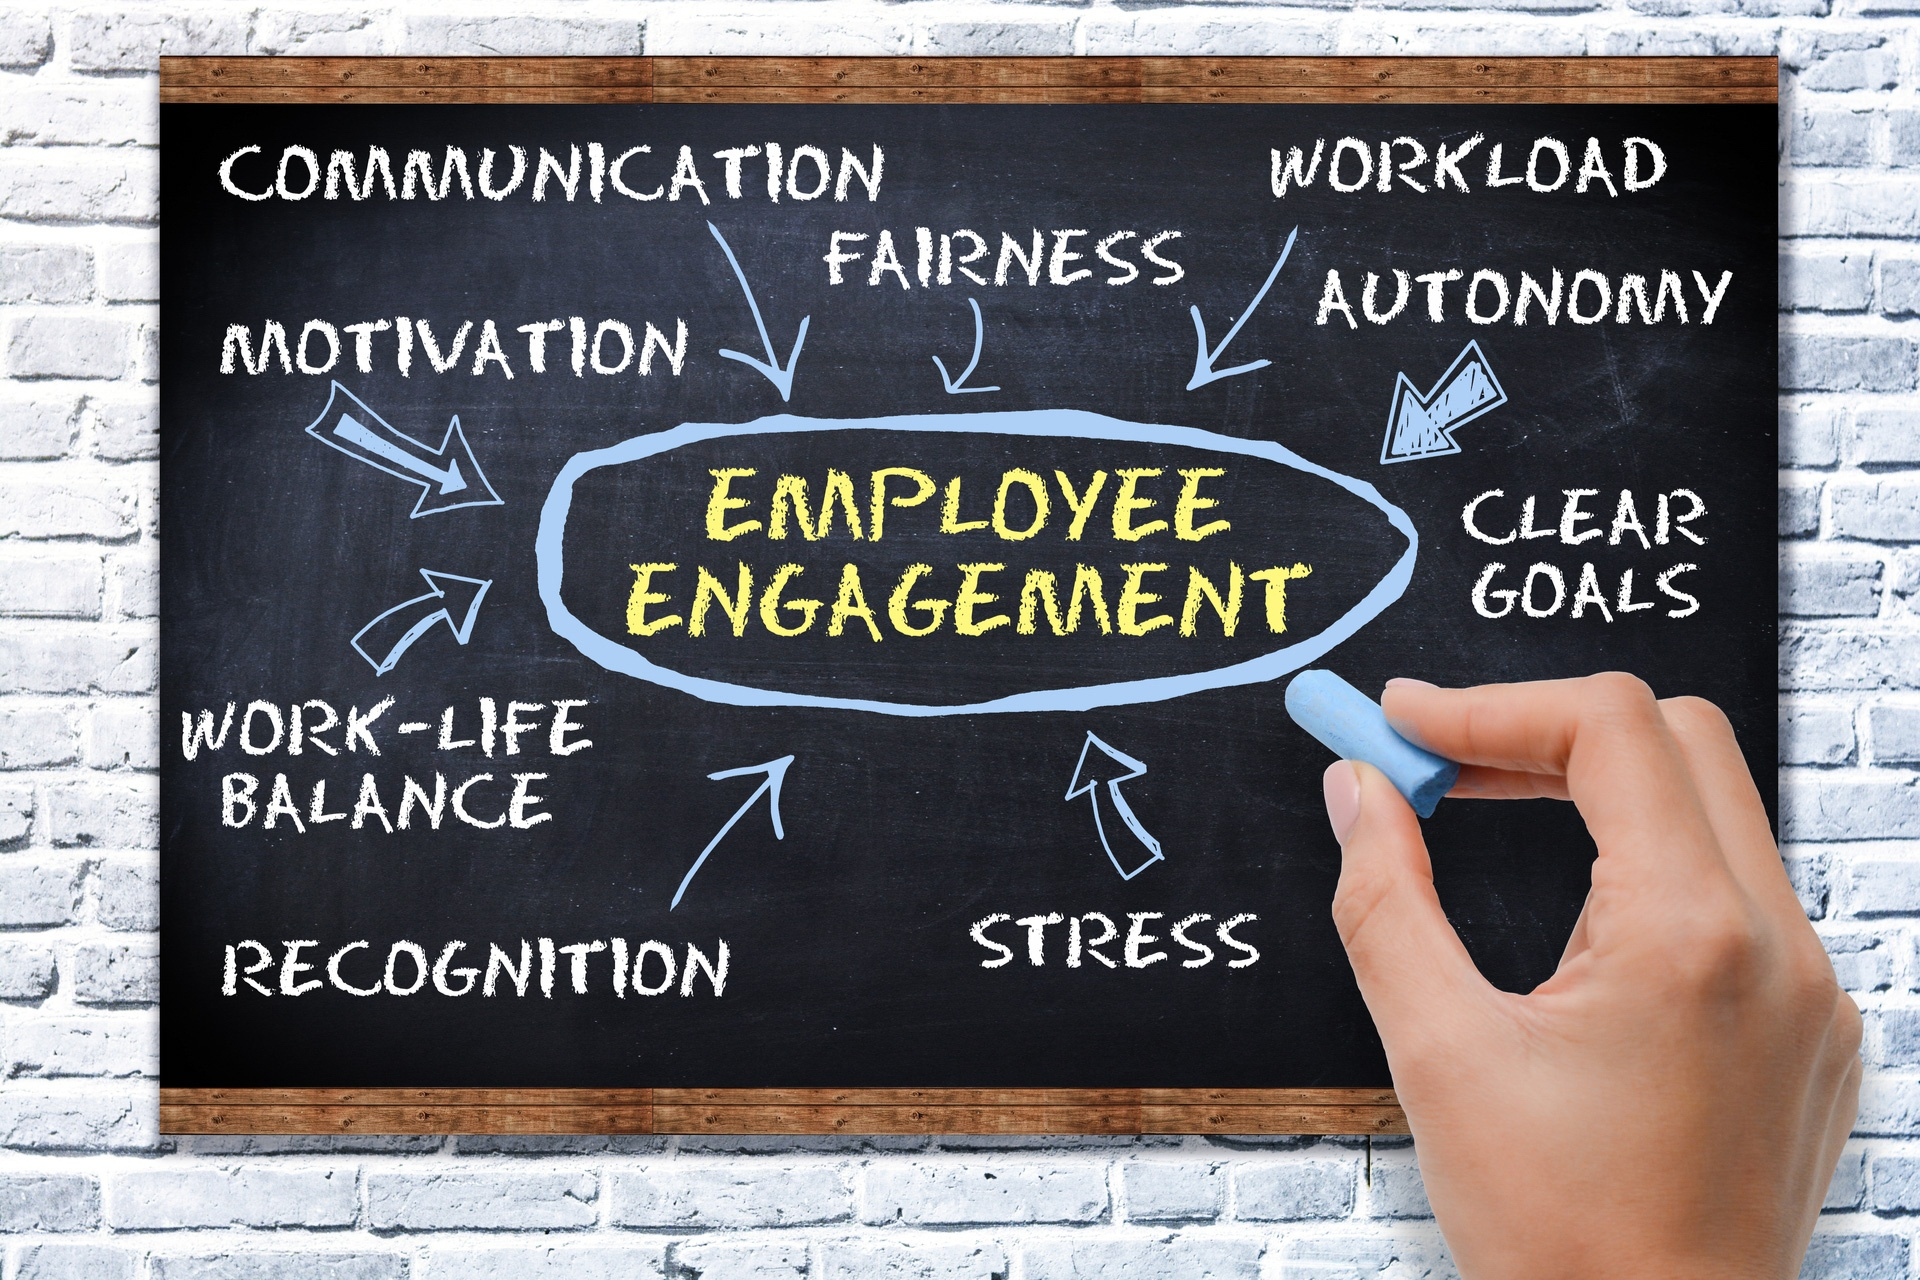 Employee Engagement Trends for 2018